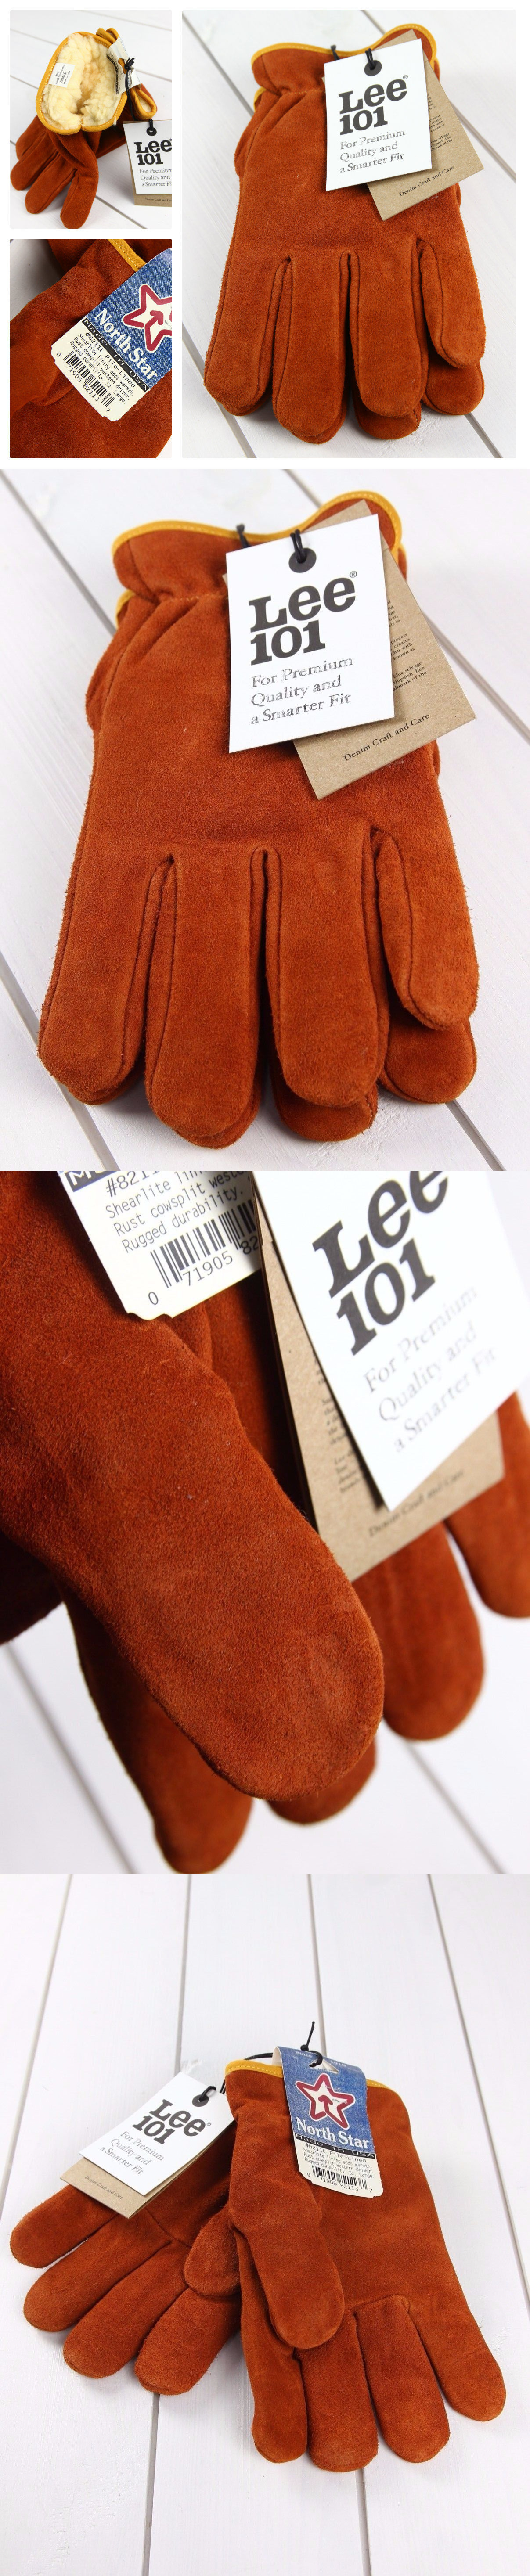 63529e11d7d0 Gloves and Mittens 2994  New Lee 101 And North Star Made In Usa Leather  Gloves Lined Winter Brown Ginger -  BUY IT NOW ONLY   29.99 on eBay!